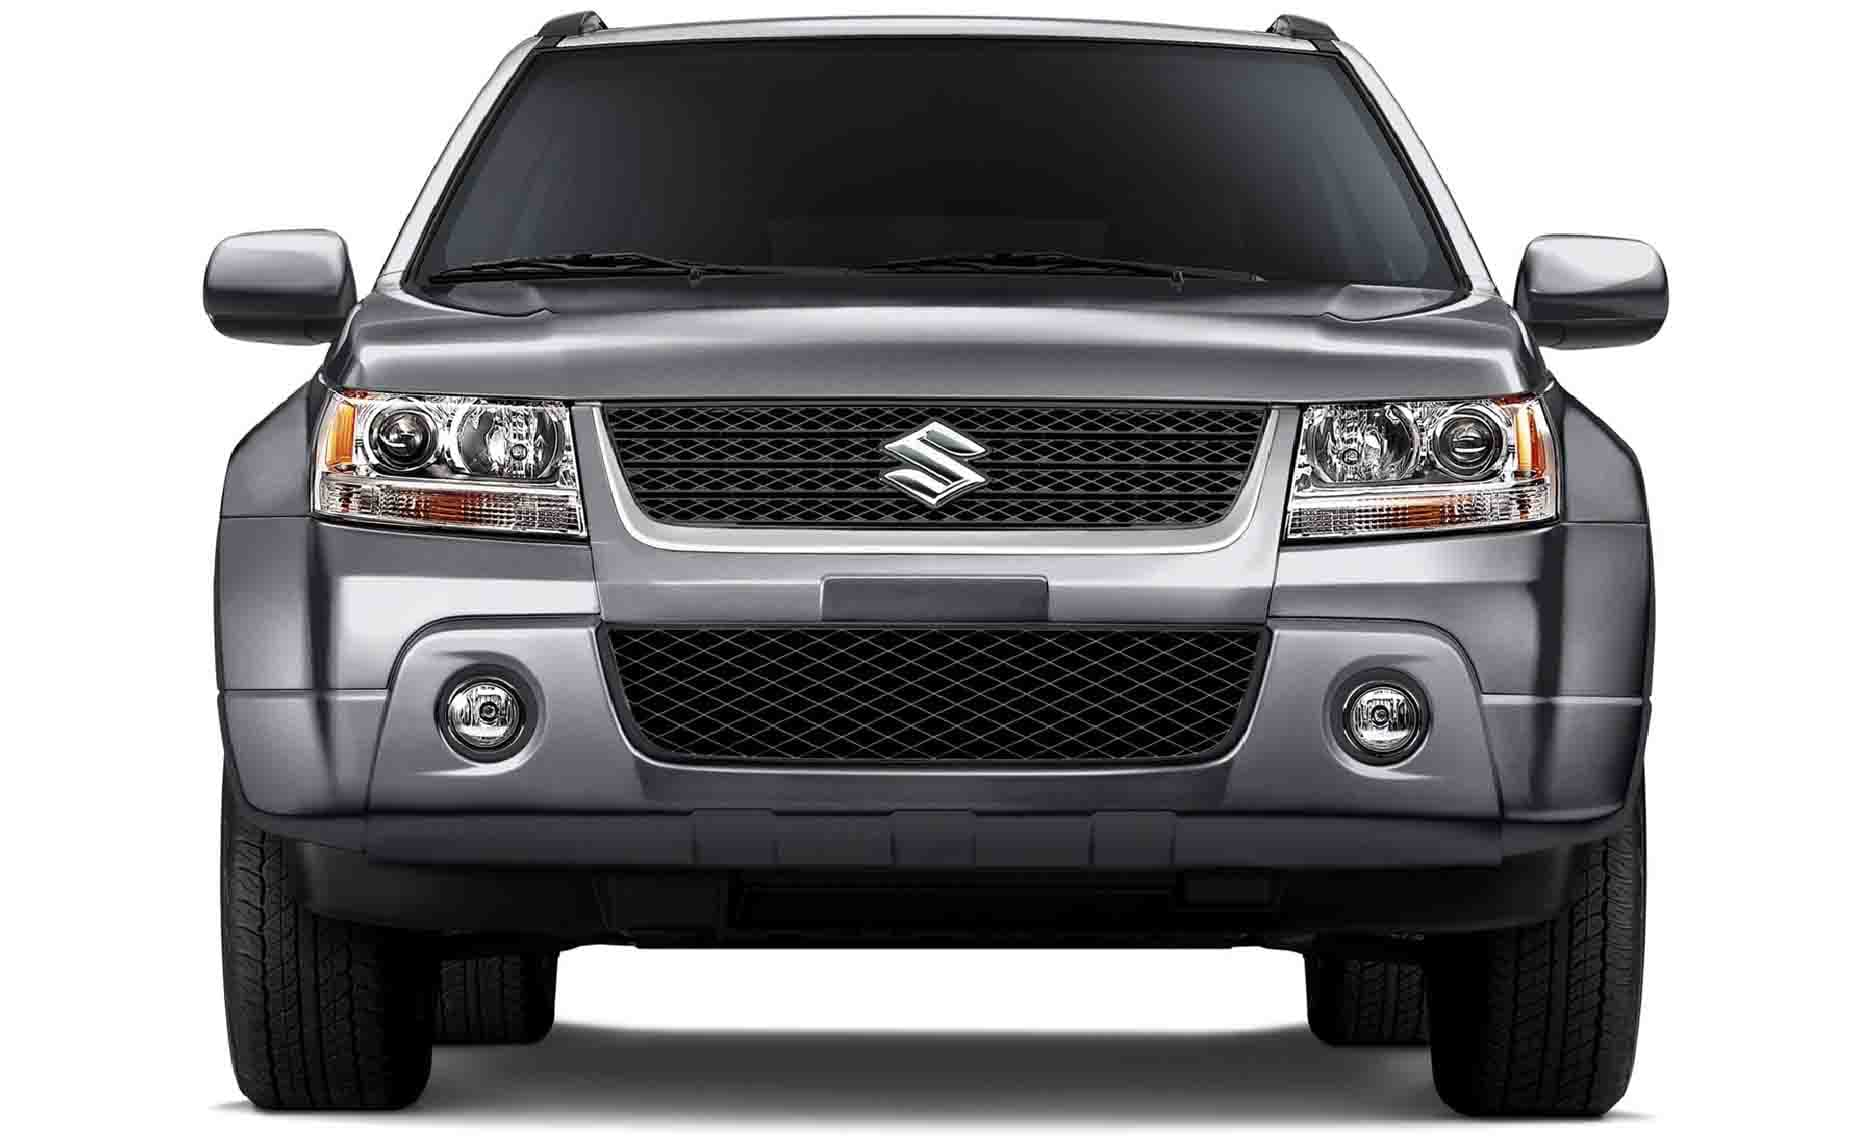 http://i.ndtvimg.com/auto/makers/29/200/suzuki-grand-vitara-2011-widescreen-01.jpg